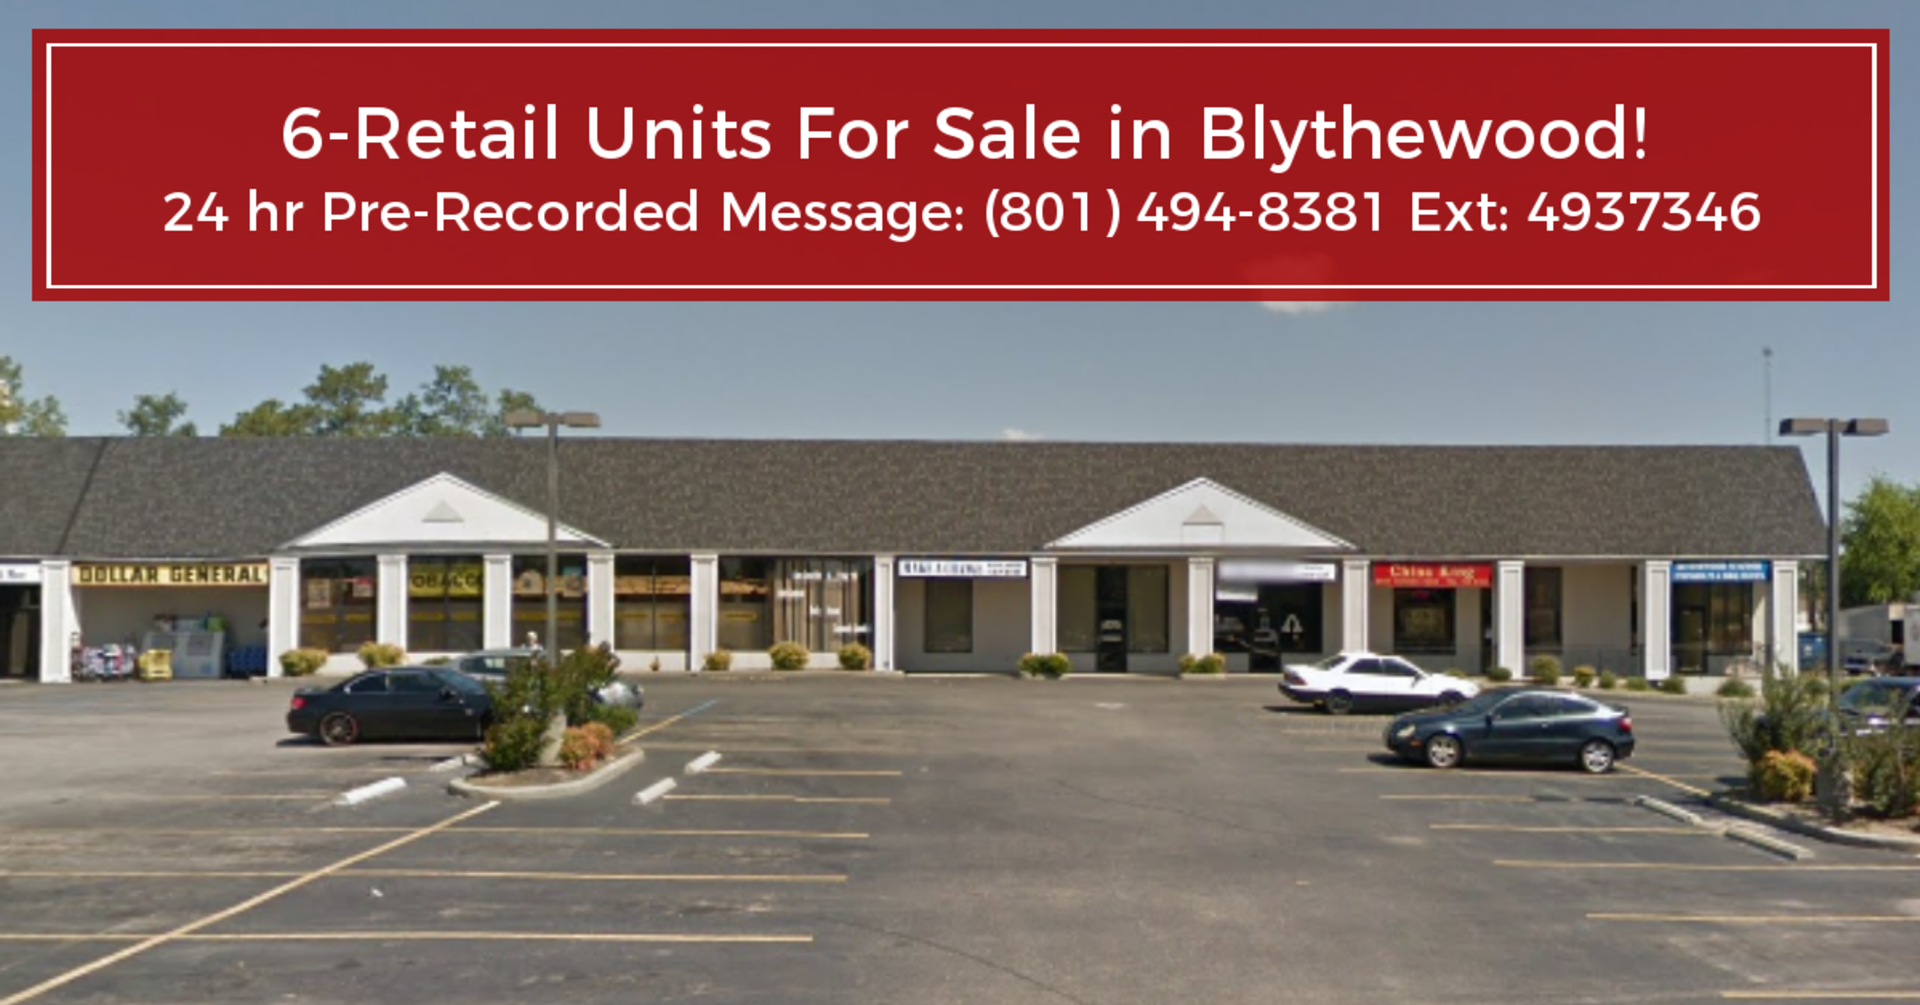 Commercial-6 Retail Units For Sale In Blythewood, SC! (West Side)